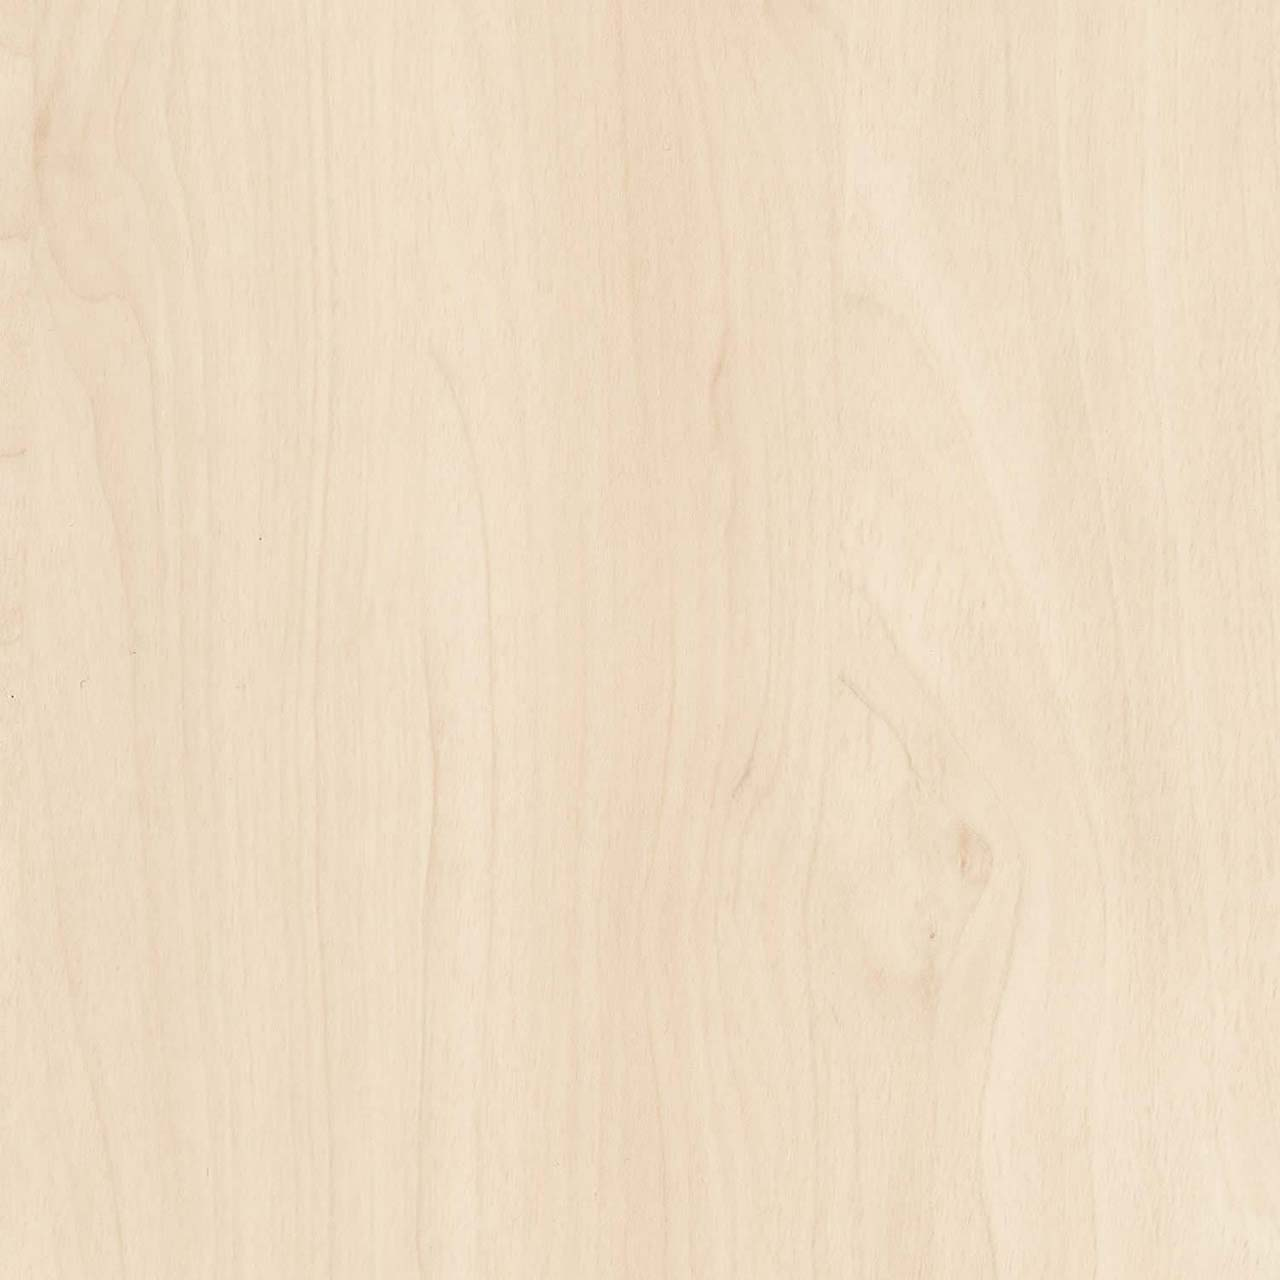 Minau Birch effect laminate panel